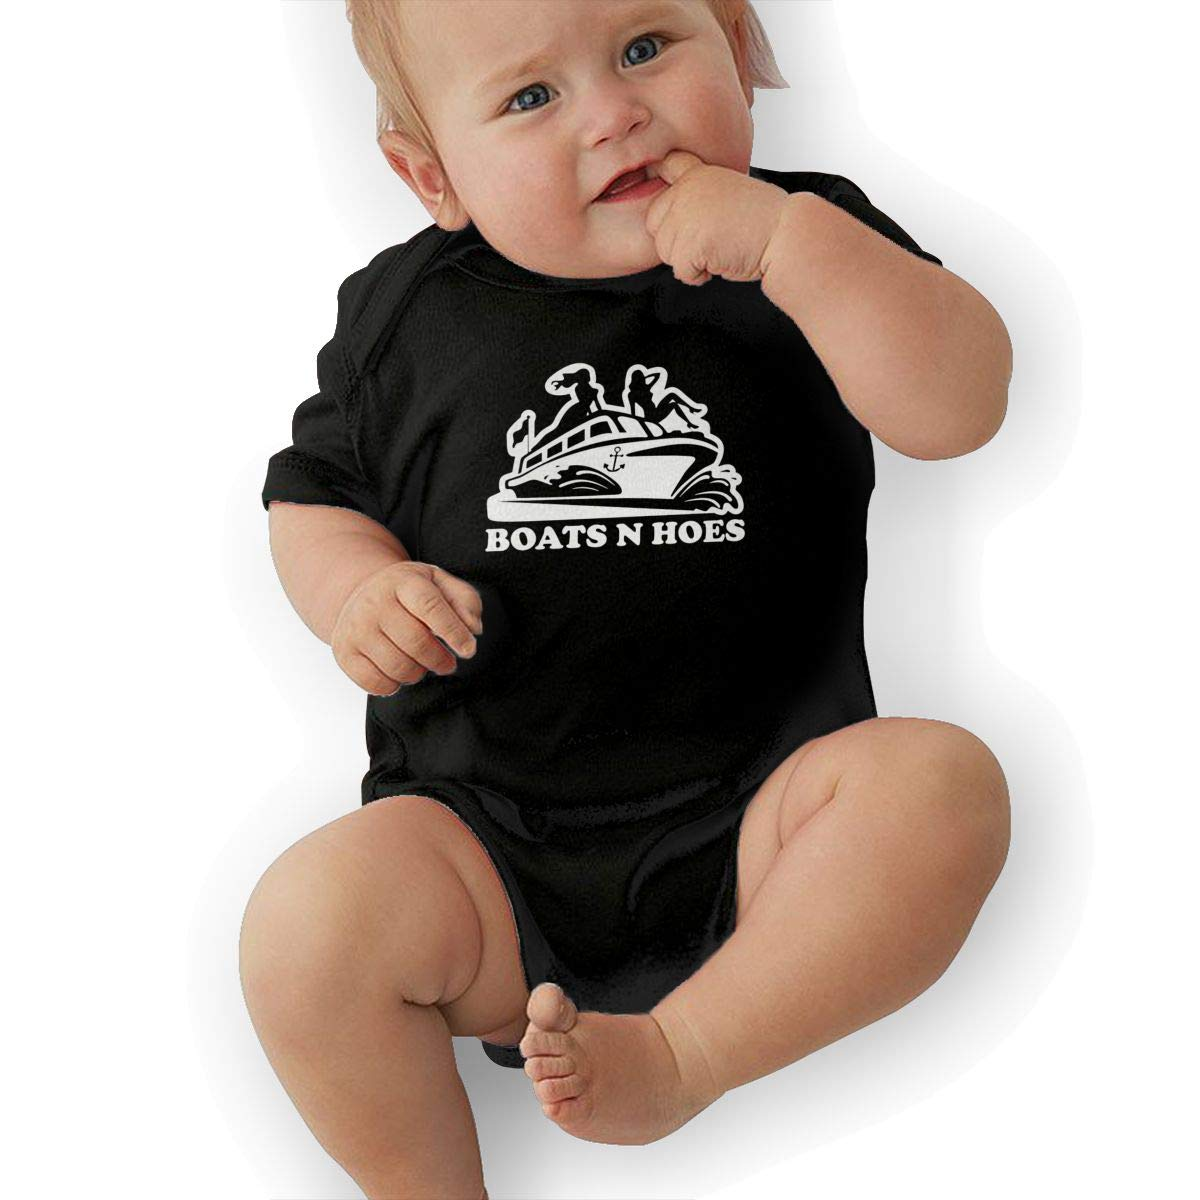 Bodysuits Clothes Onesies Jumpsuits Outfits Black HappyLifea Boats and Hoes Baby Pajamas